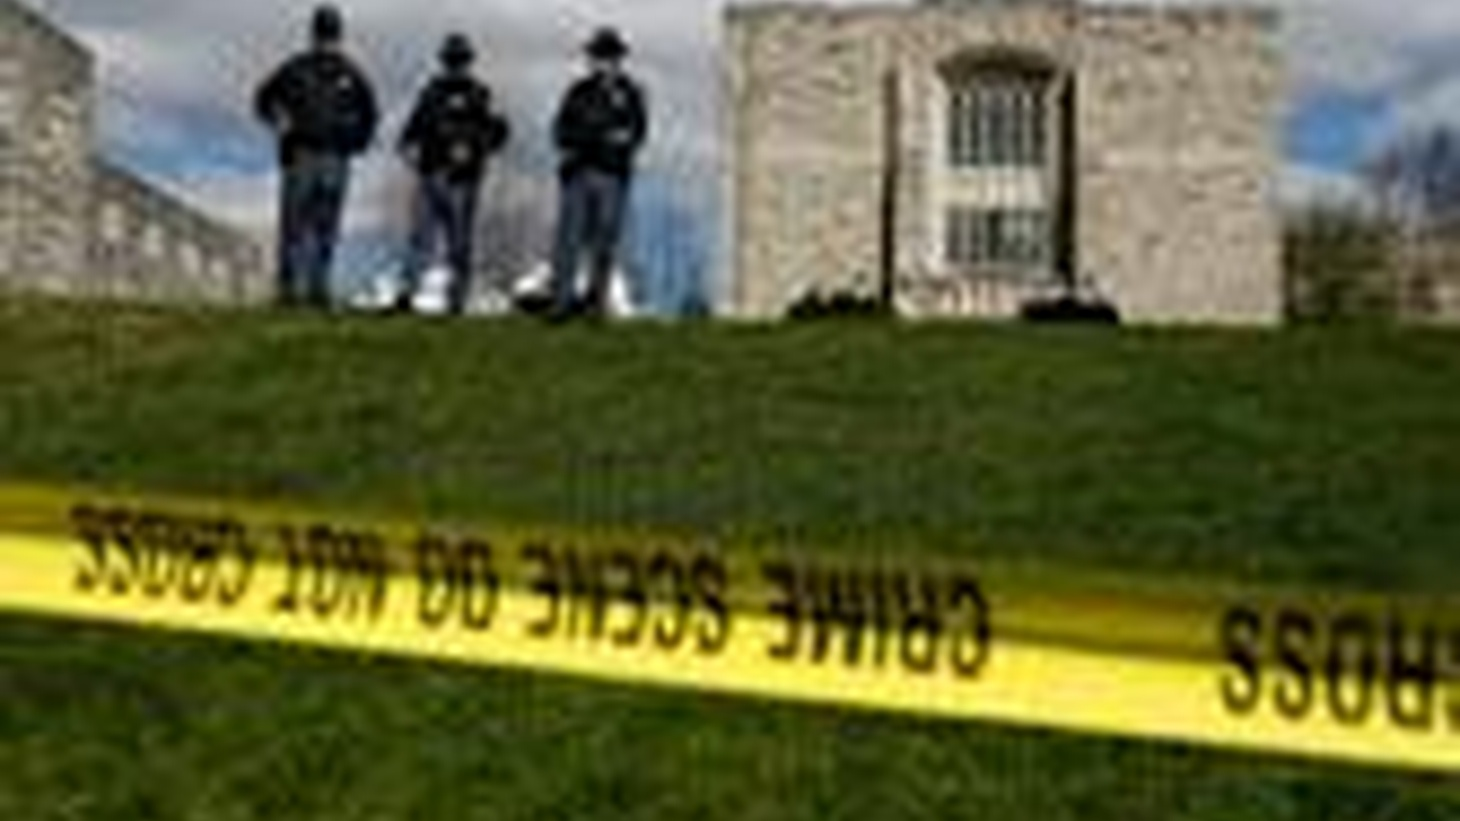 It's the deadliest shooting rampage in American history. At least 33 people are dead after a shooting rampage at the campus Virginia Tech. Would California's gun laws prevent a similar situation here?